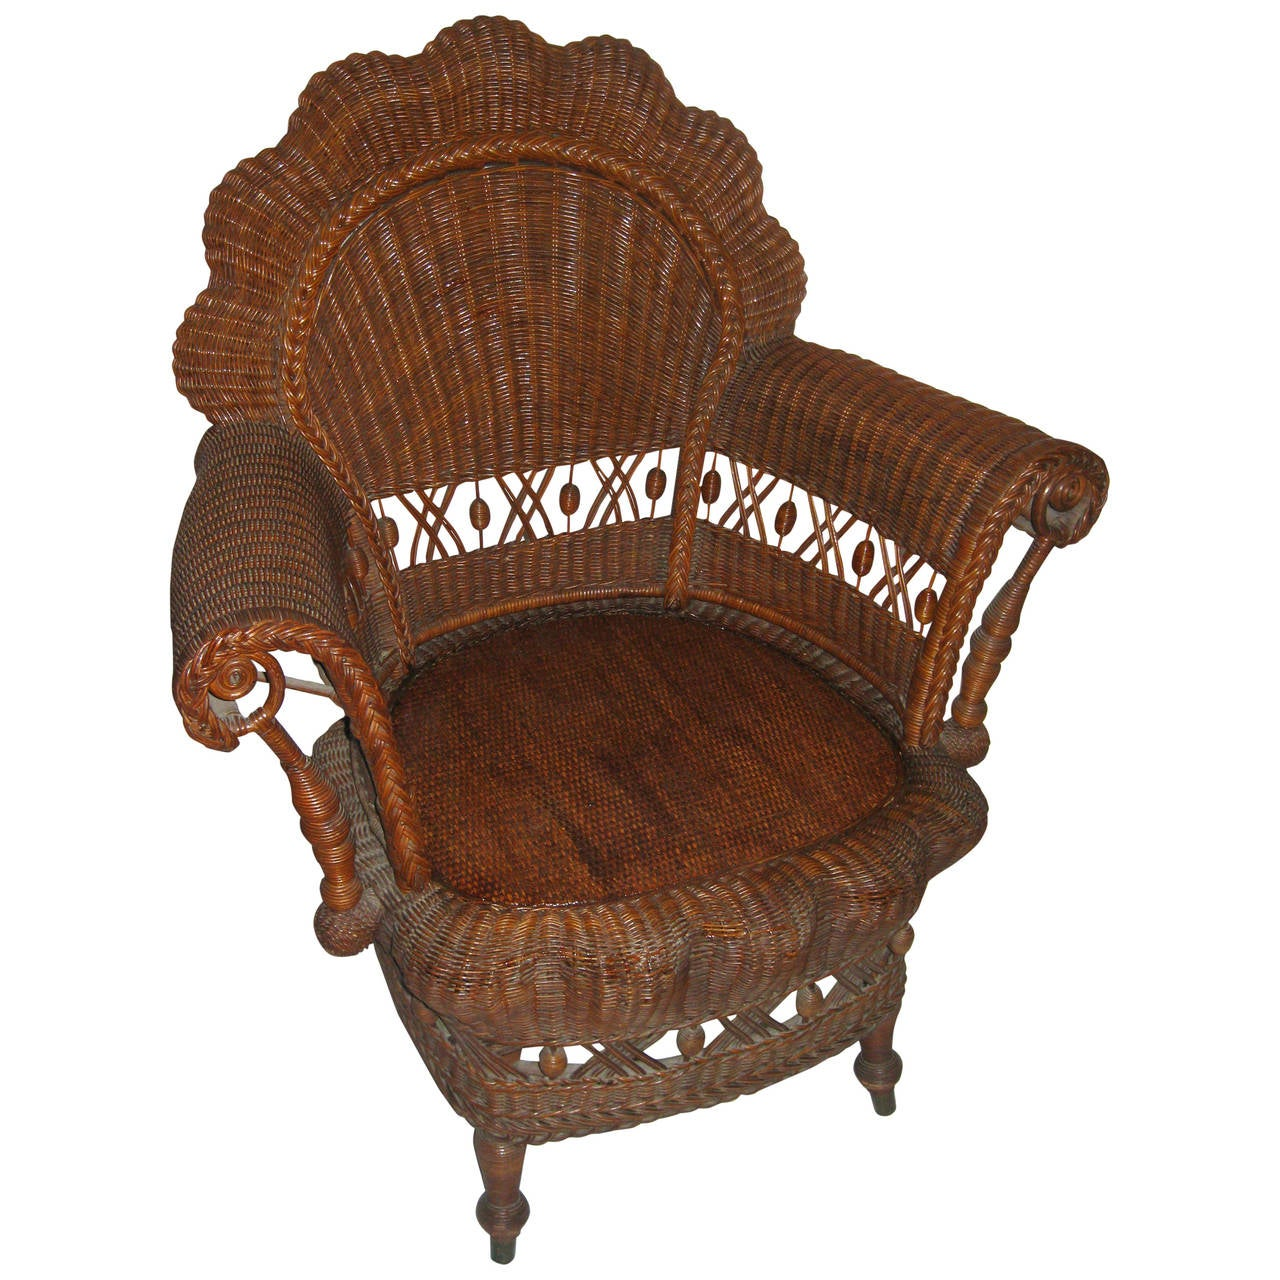 19th Century American Wicker Heywood Brothers Armchair